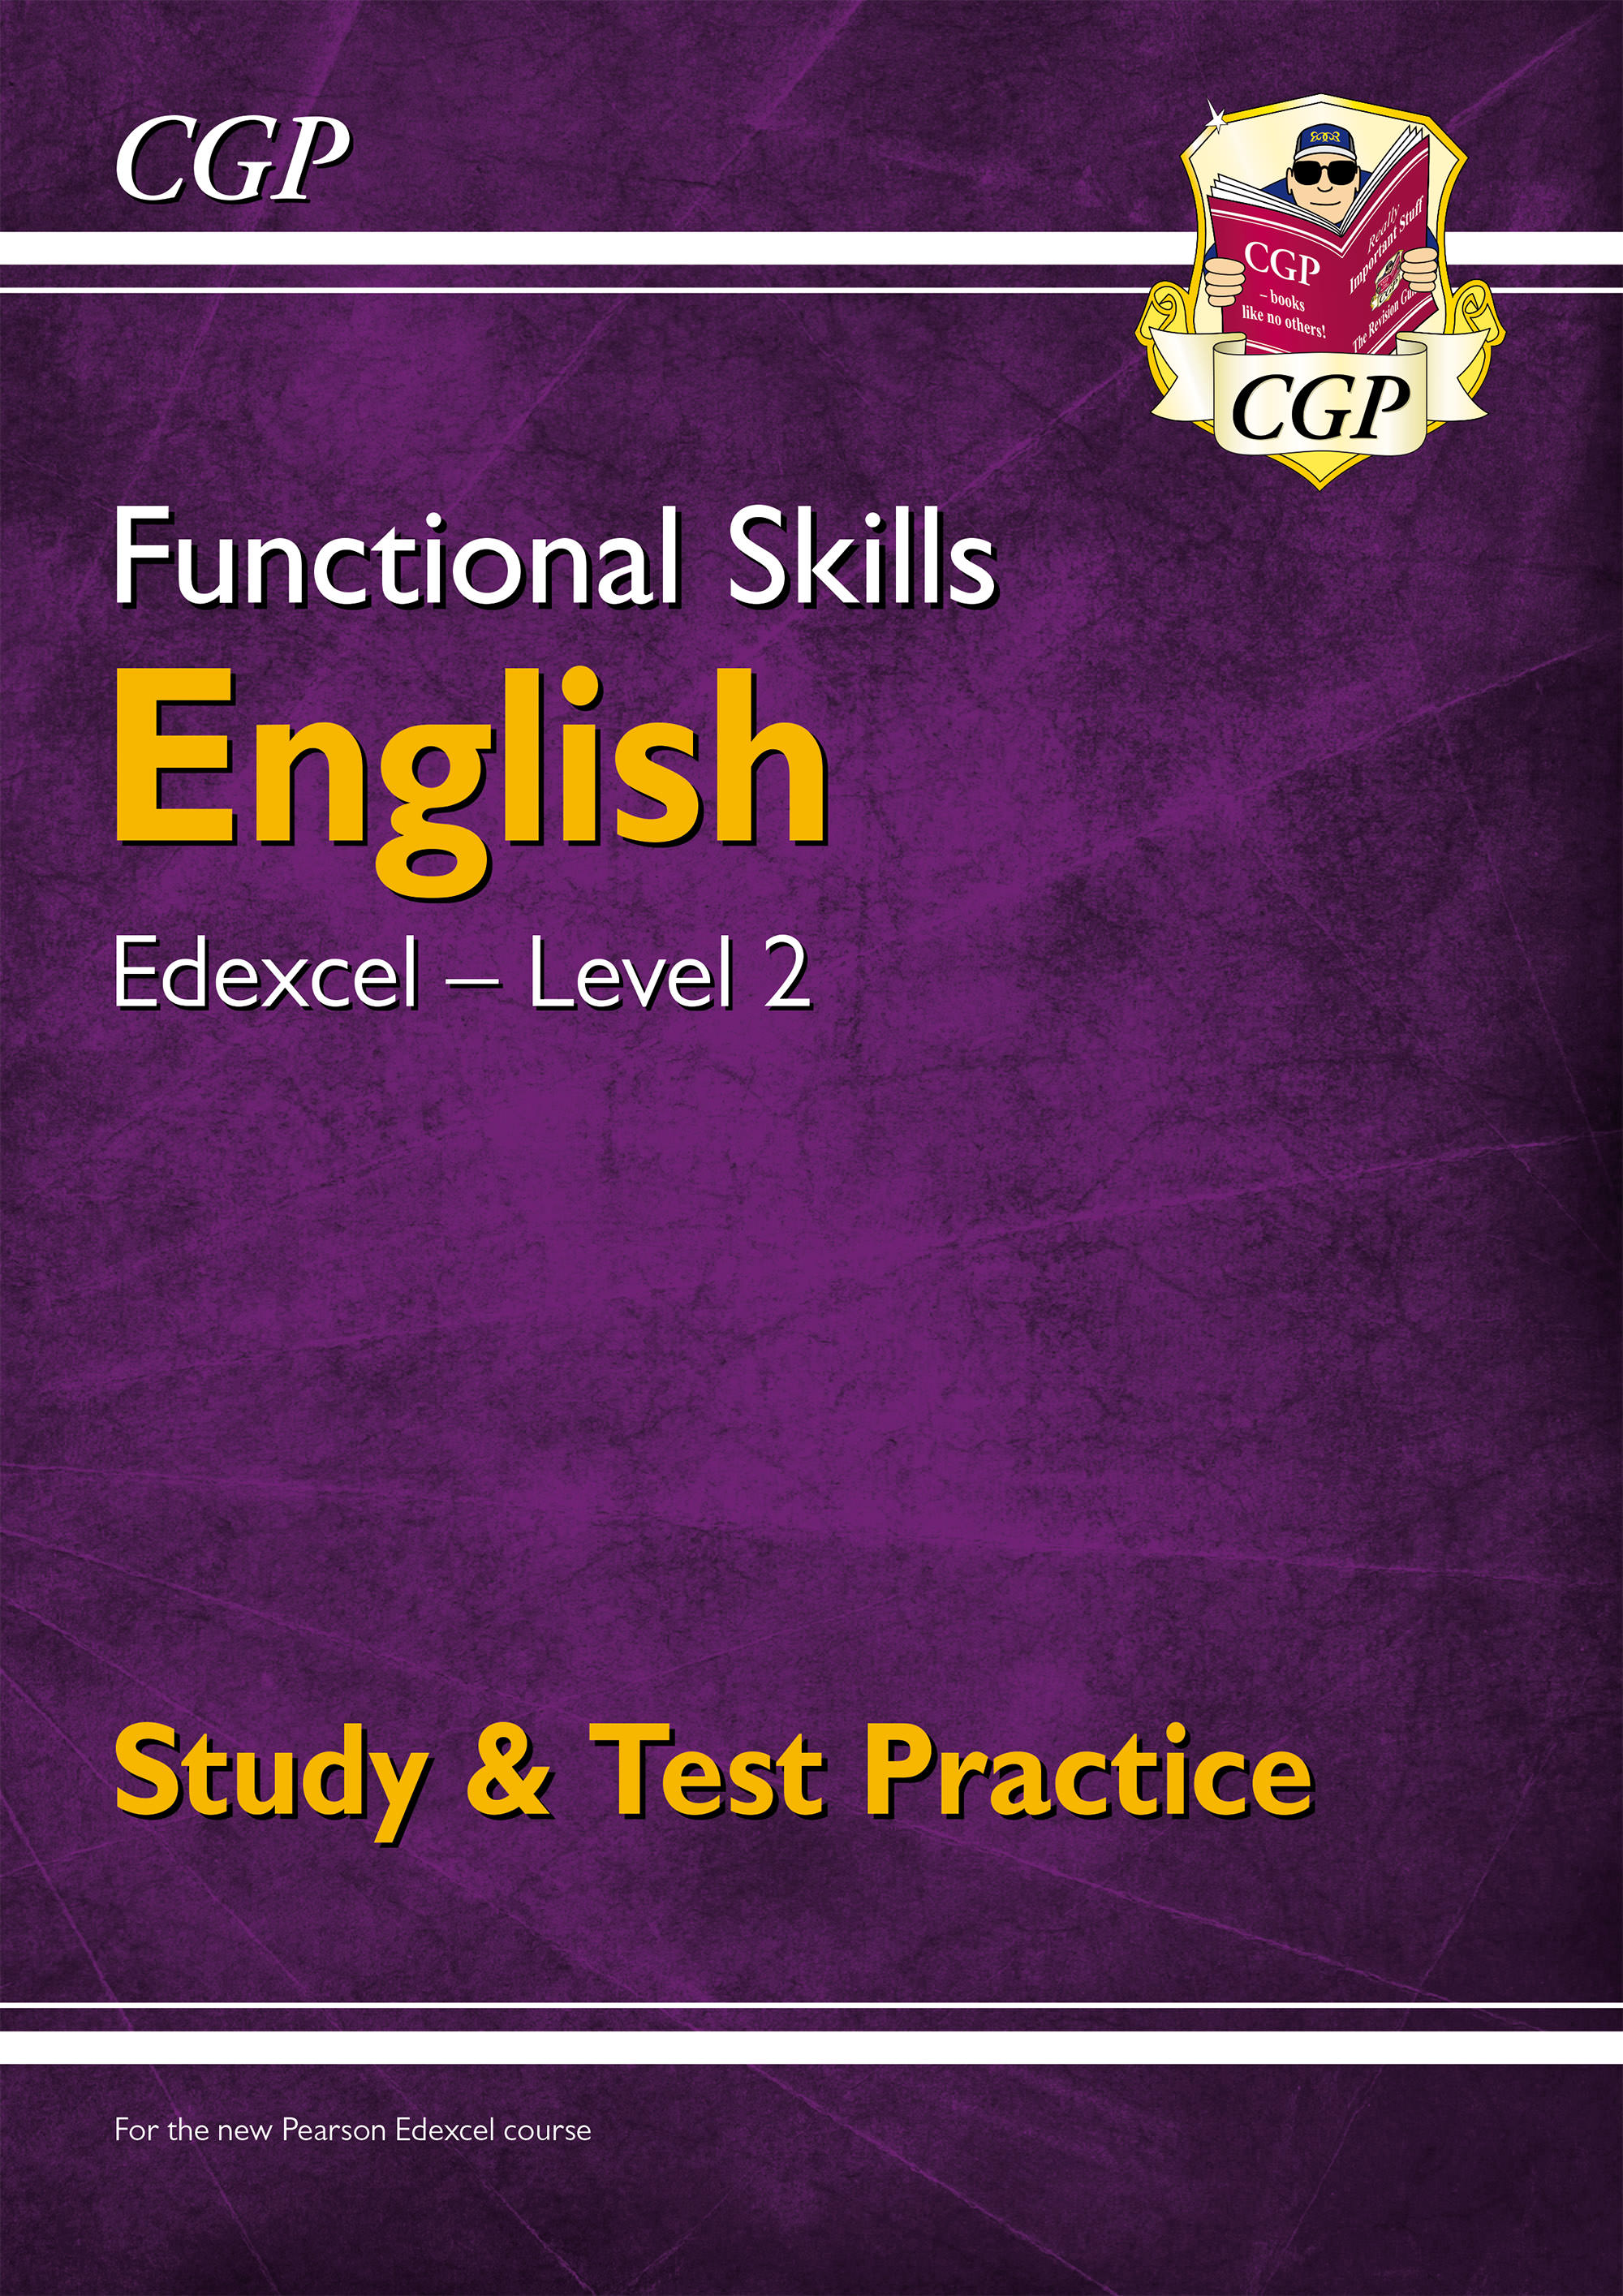 E2ESRA1D - Functional Skills English: Edexcel Level 2 - Study & Test Practice (for 2021 & beyond) On